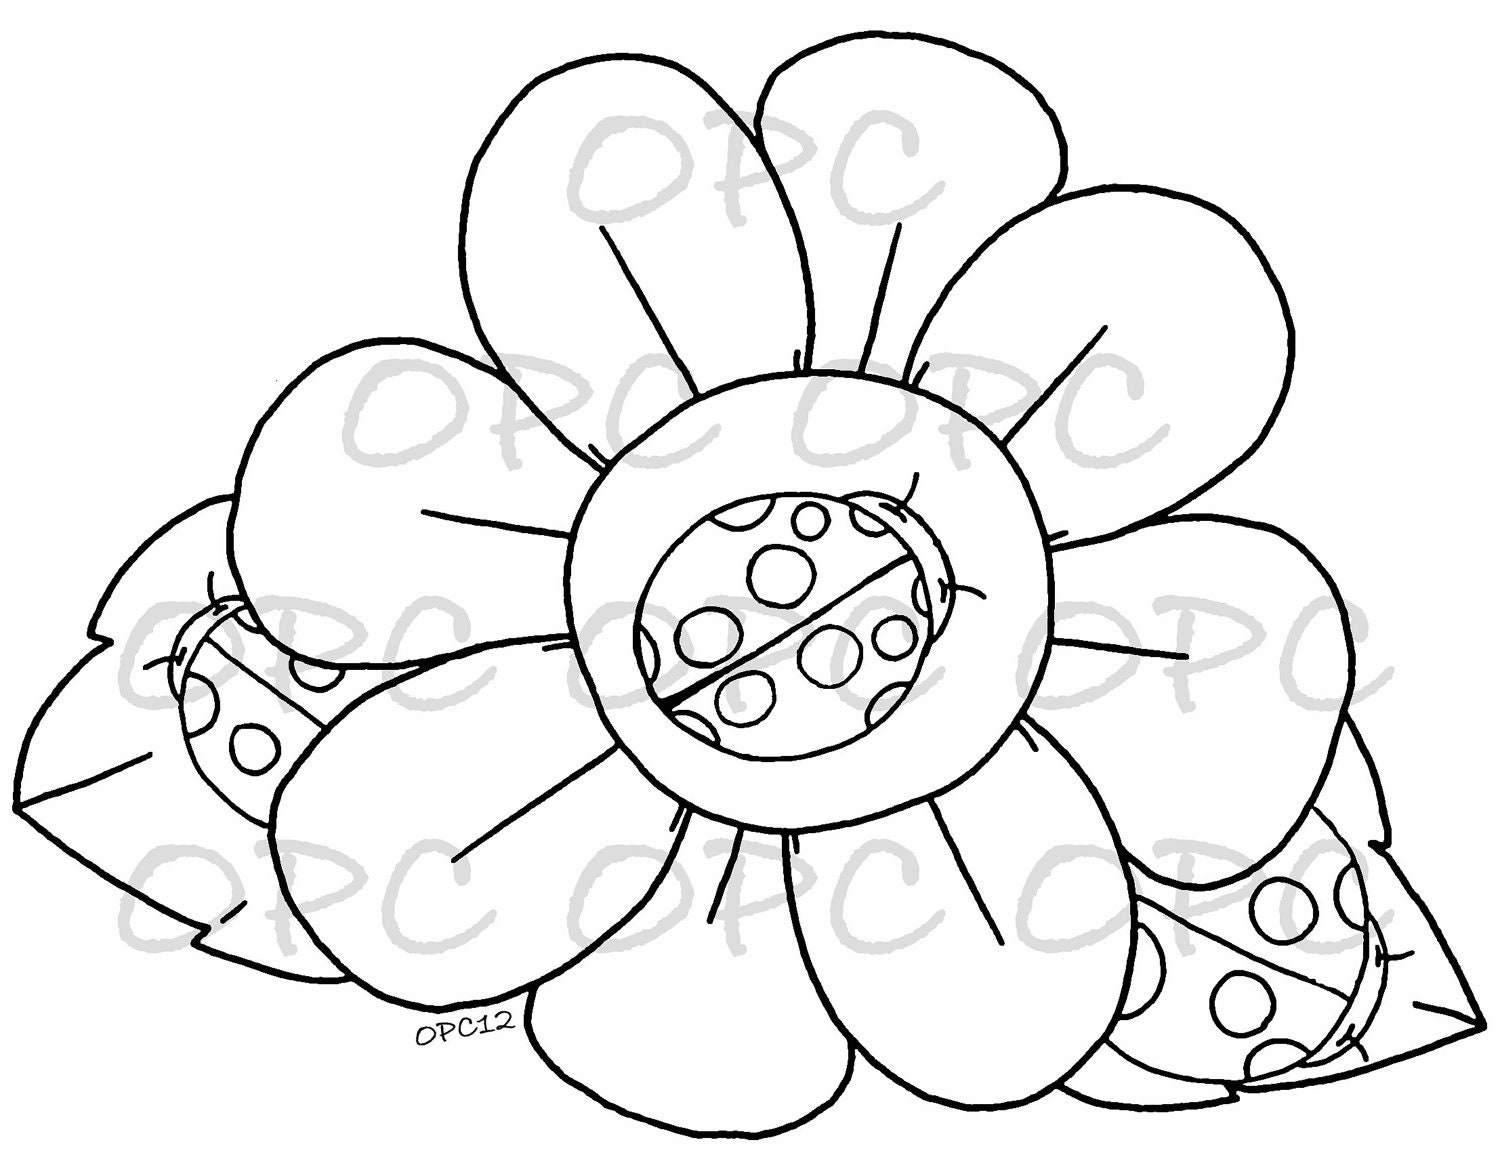 Pics for cute ladybugs coloring pages for Cute ladybug coloring pages